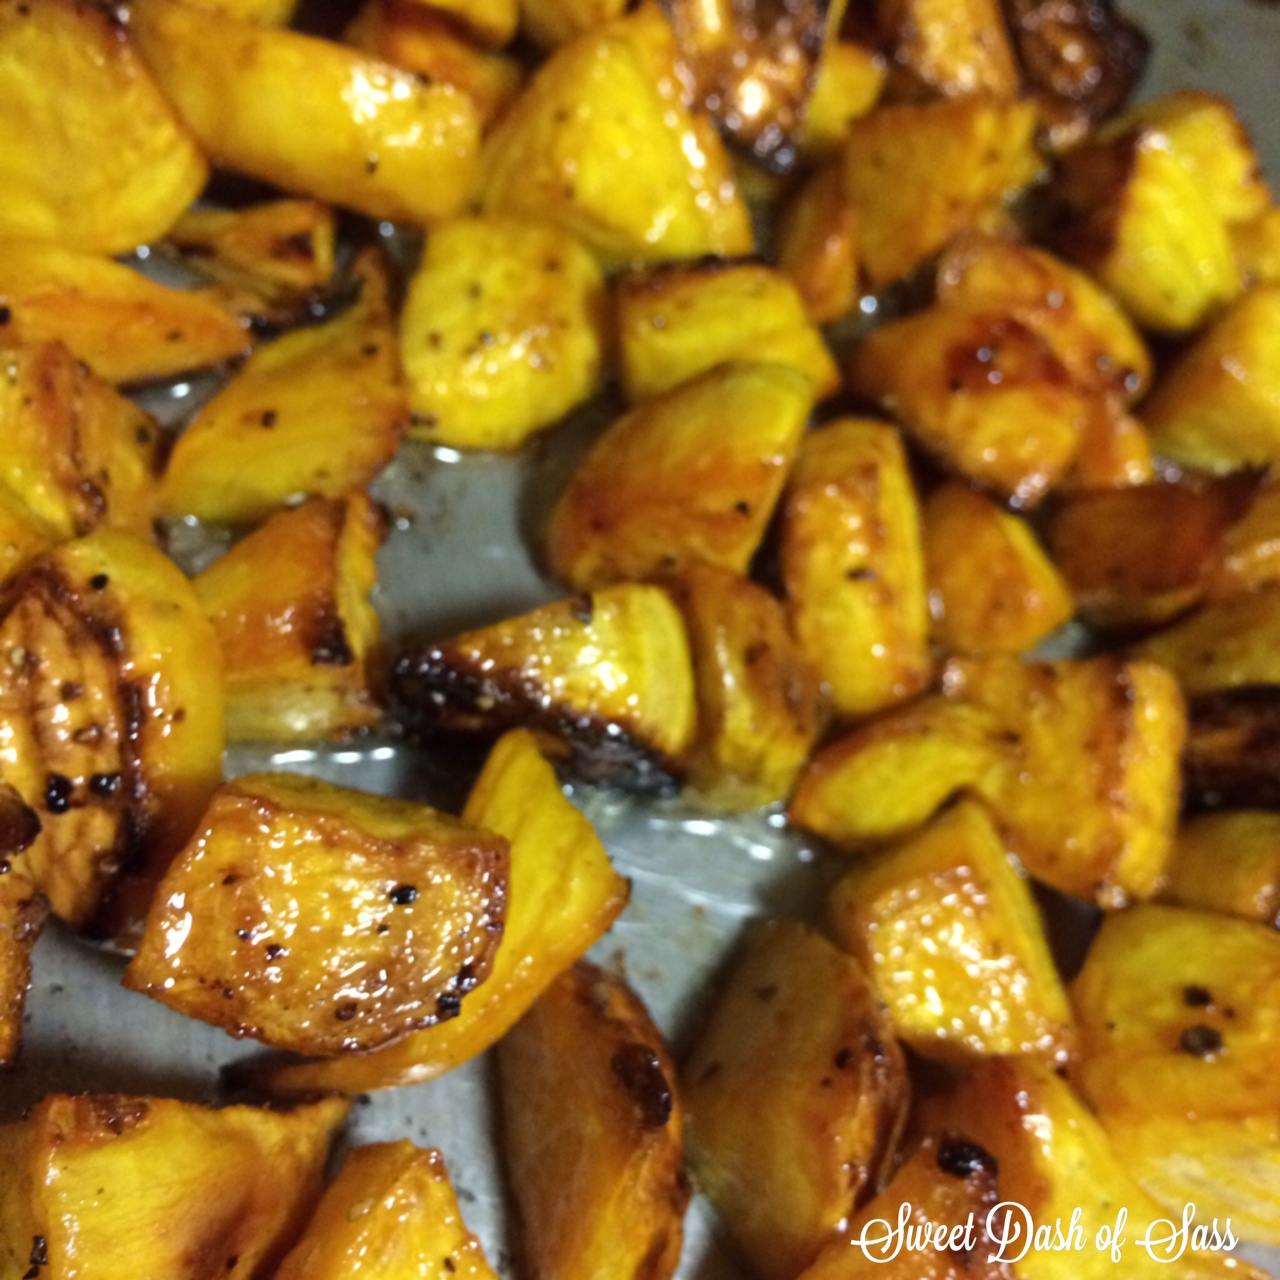 Roasted Golden Beets - www.SweetDashofSass.com